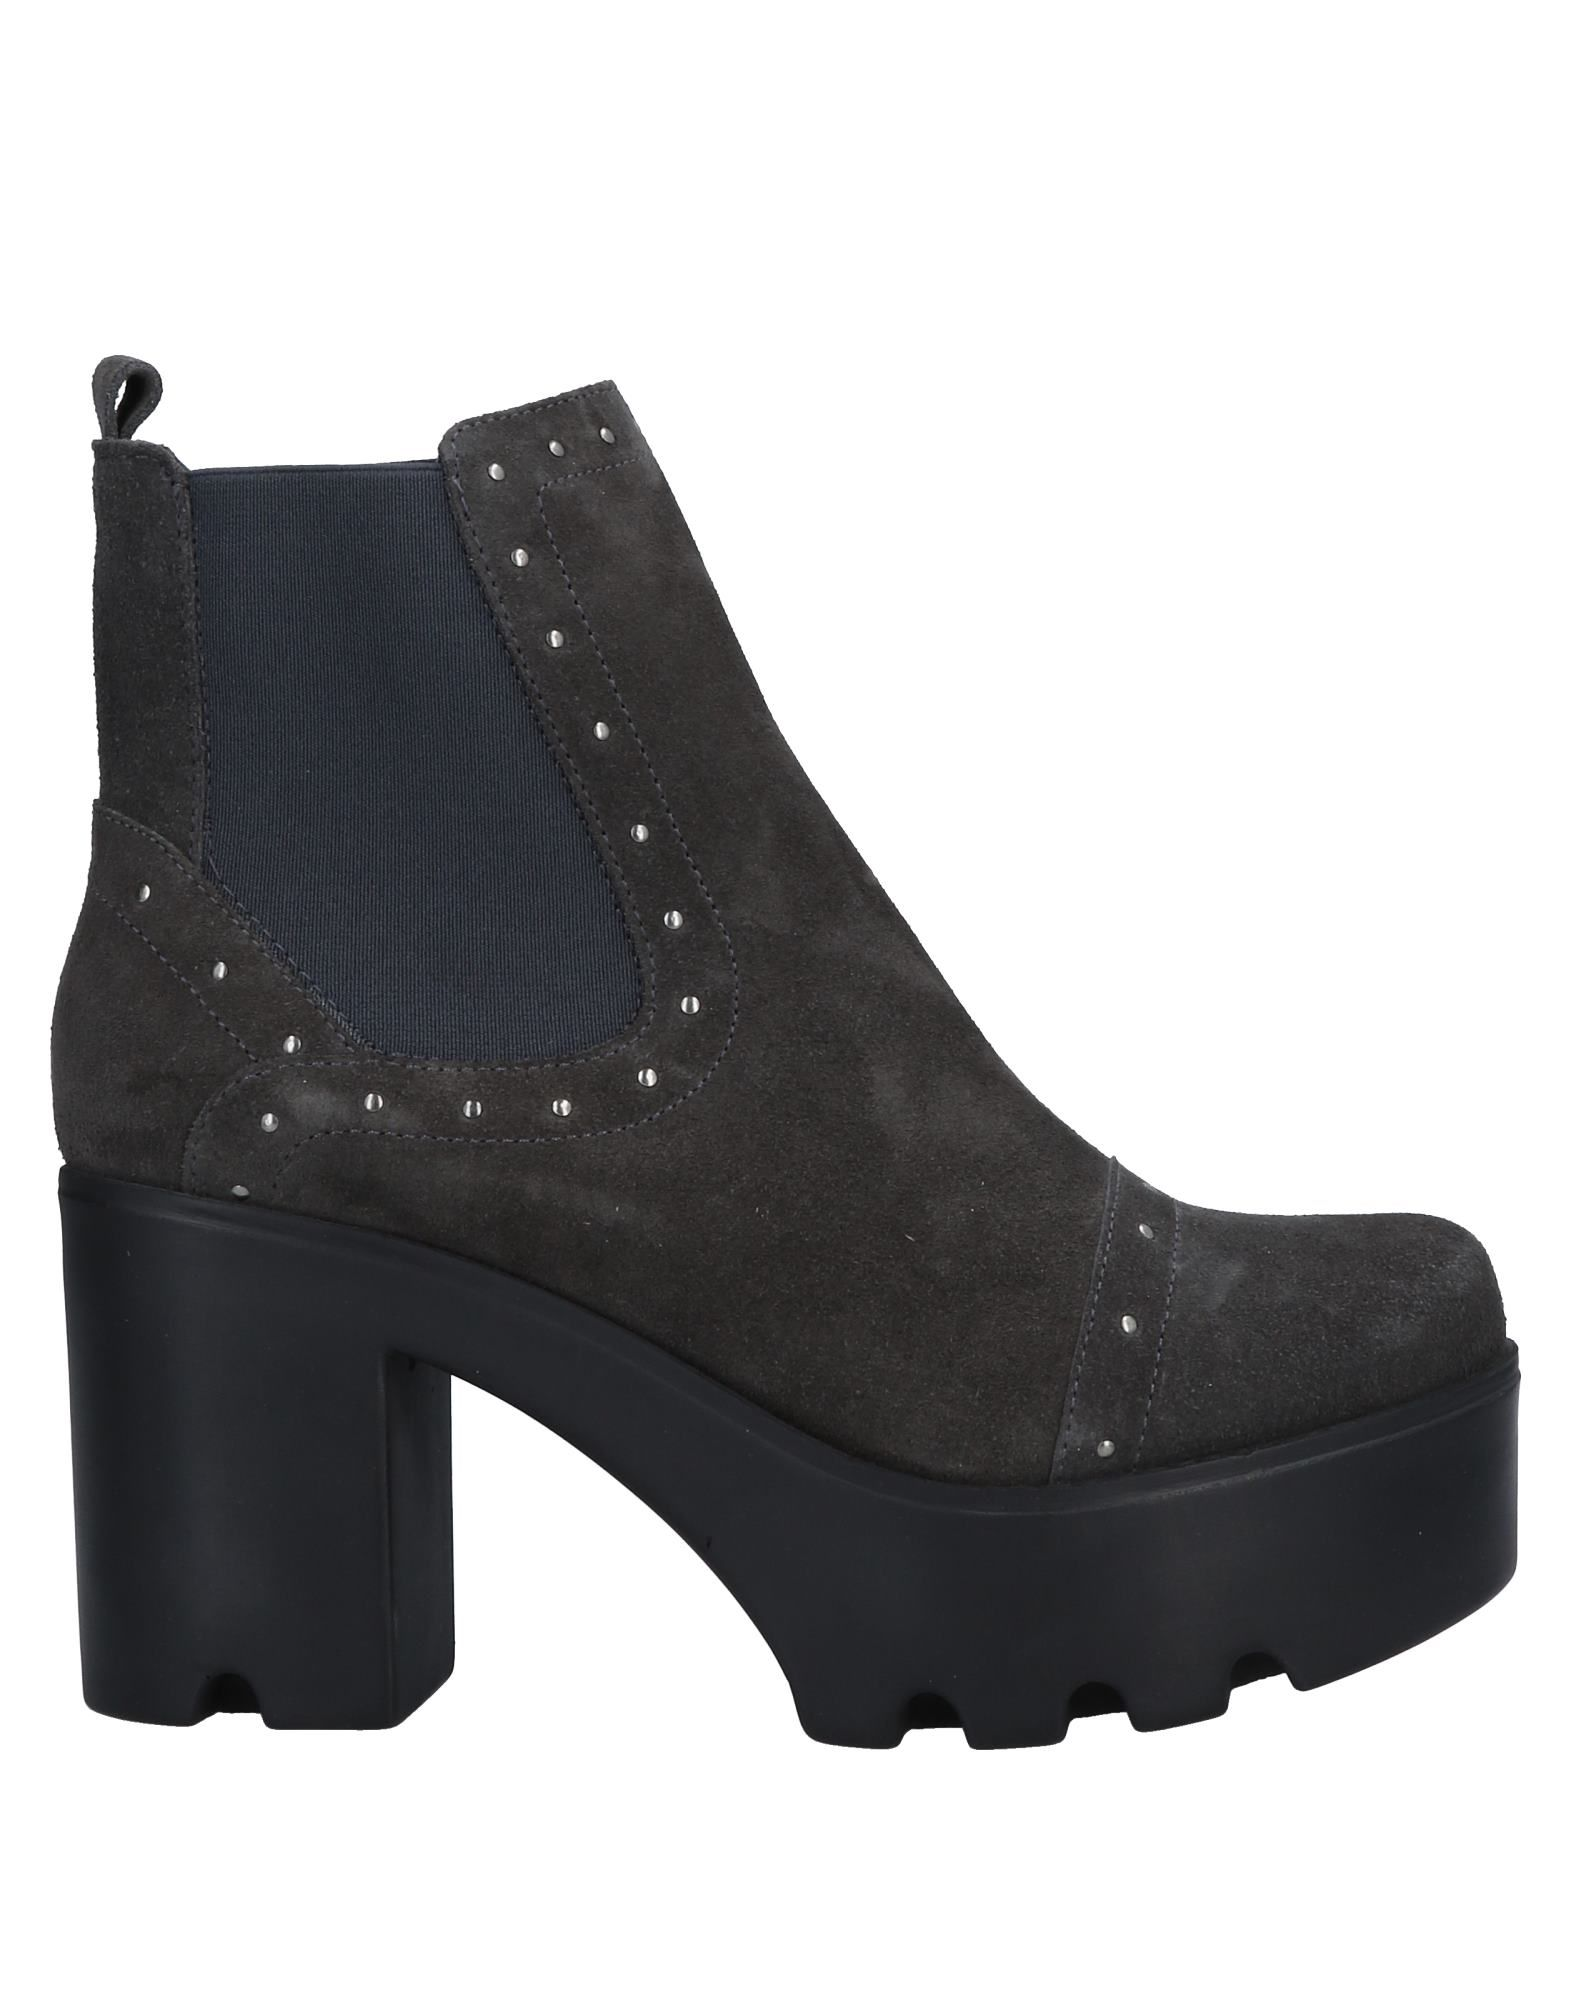 Claudia By Isaberi Claudia Ankle Boot - Women Claudia Isaberi By Isaberi Ankle Boots online on  Australia - 11568627DL e45160